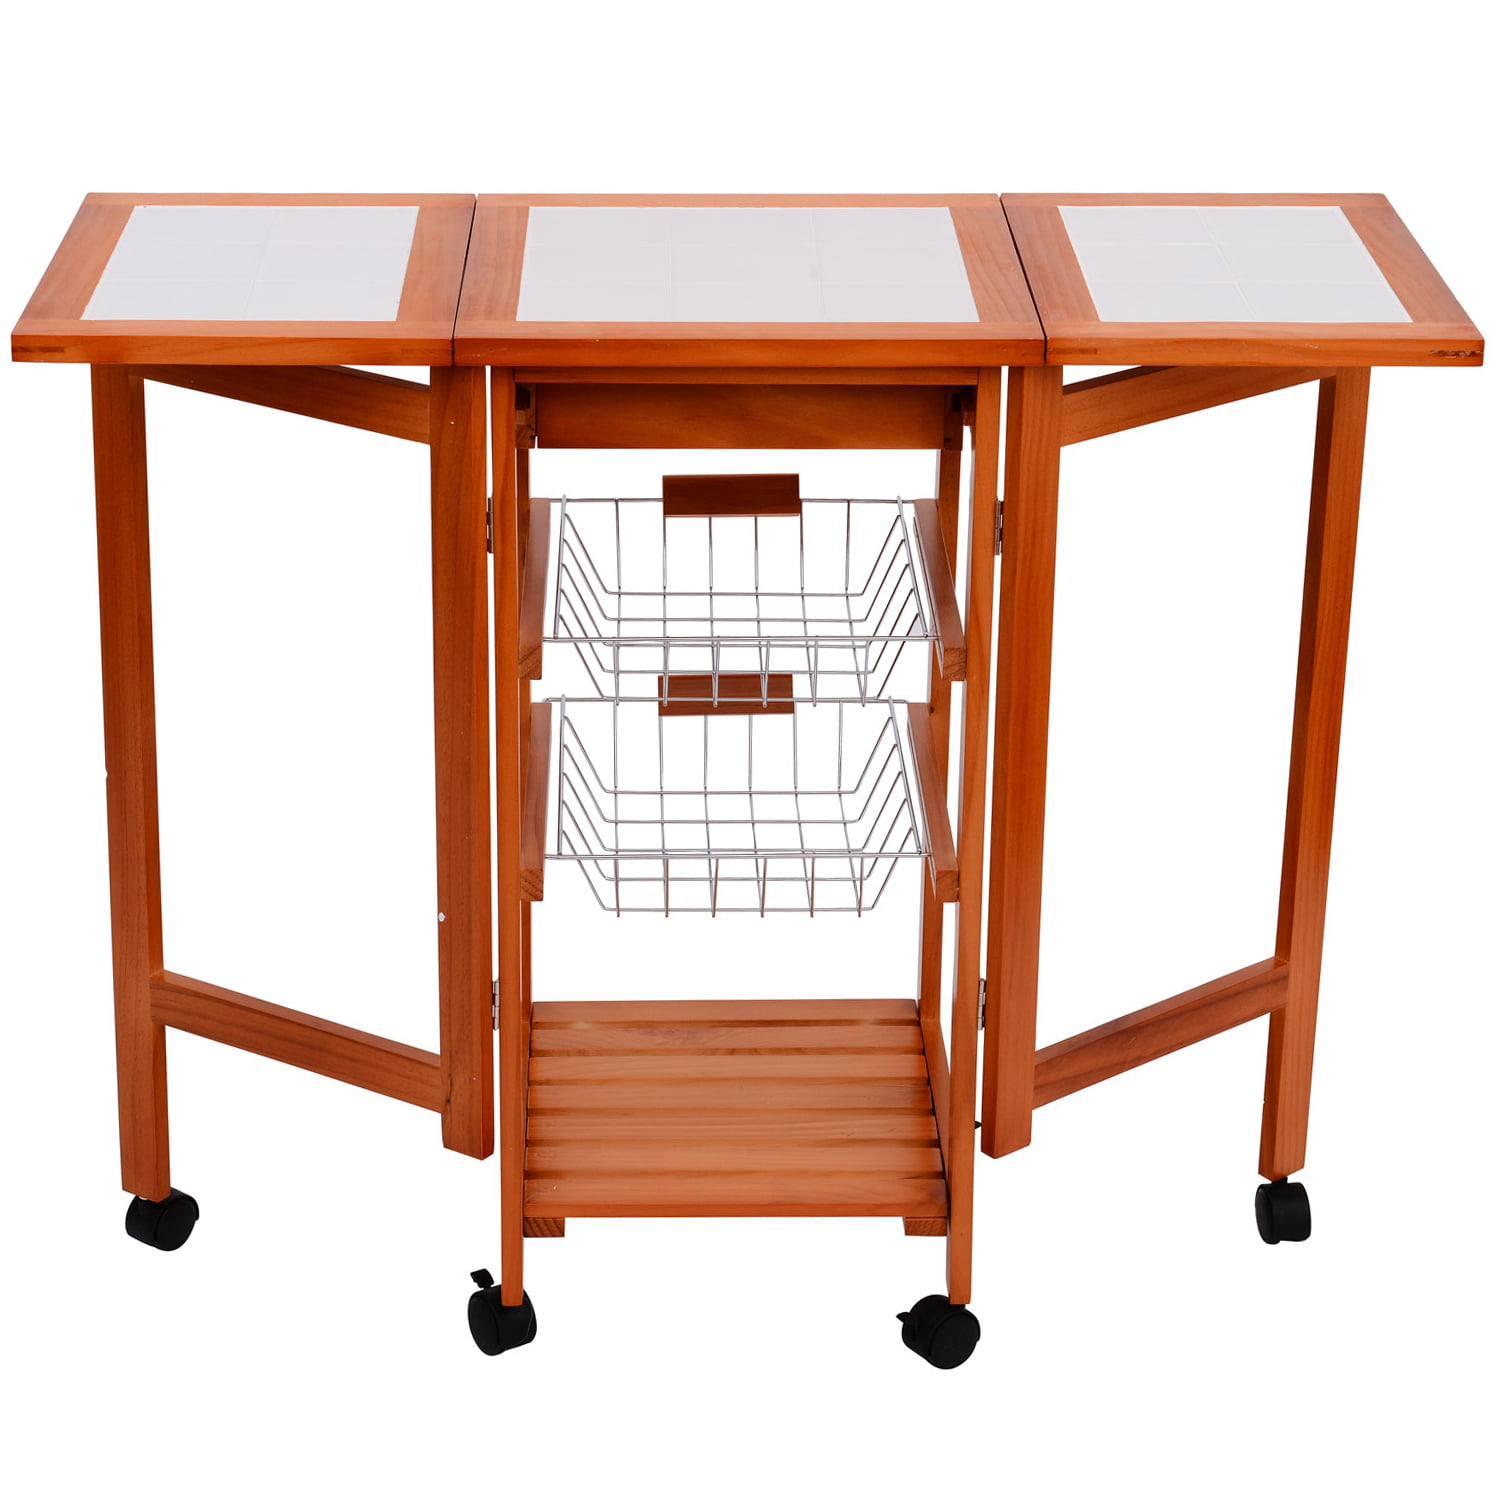 Kitchen Island Cart. Under $75 Kitchen Island Cart